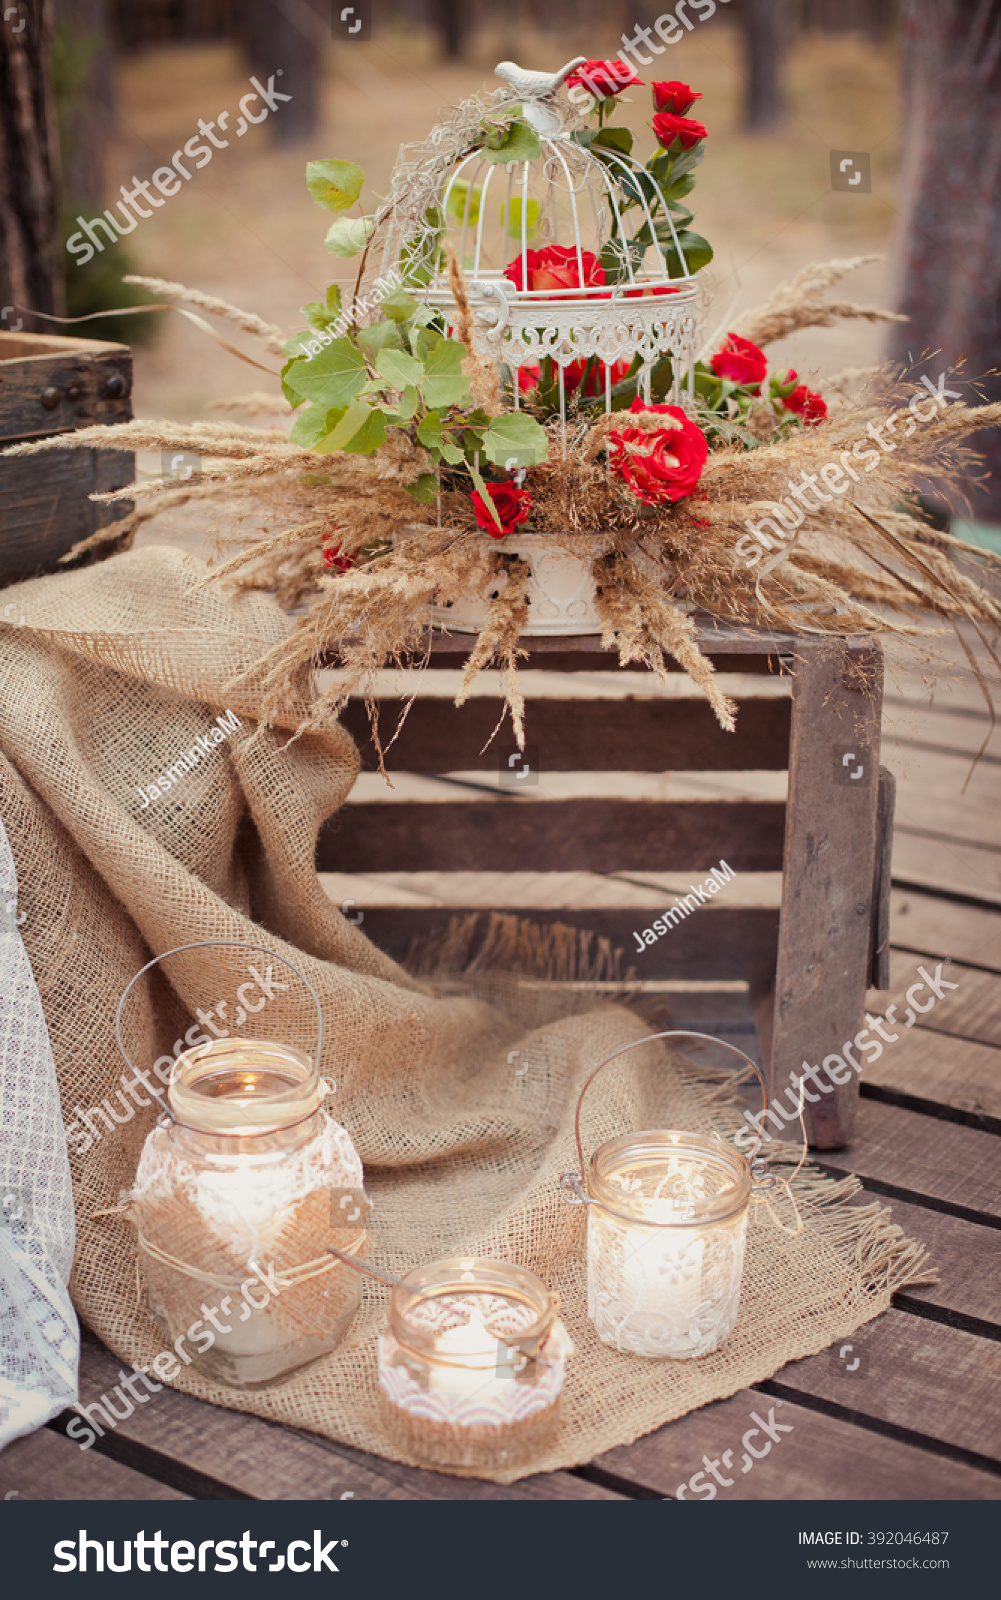 Wedding ceremony & Wedding decorations in rustic style. Romantic decor with candles #392046487